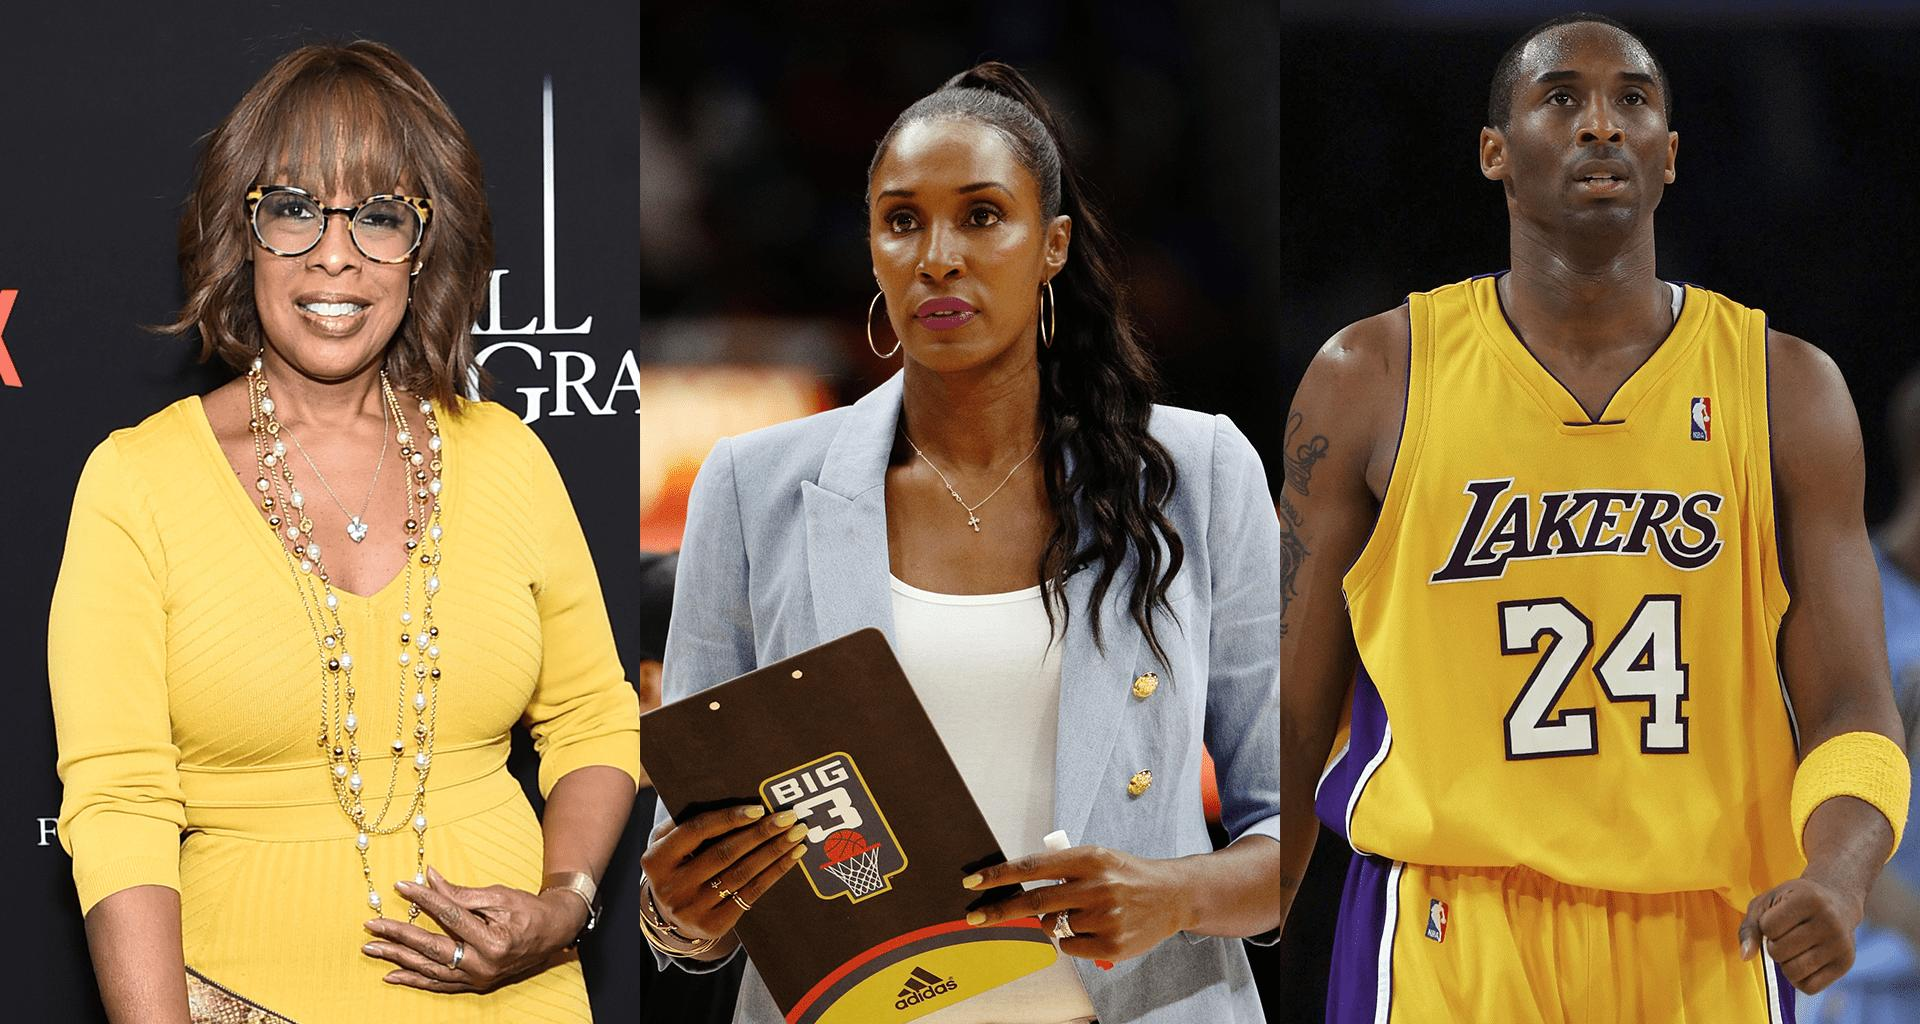 Gayle King Slams CBS After Being Dragged By Social Media For Bringing Up Kobe Bryant Rape Case During Interview With Lisa Leslie